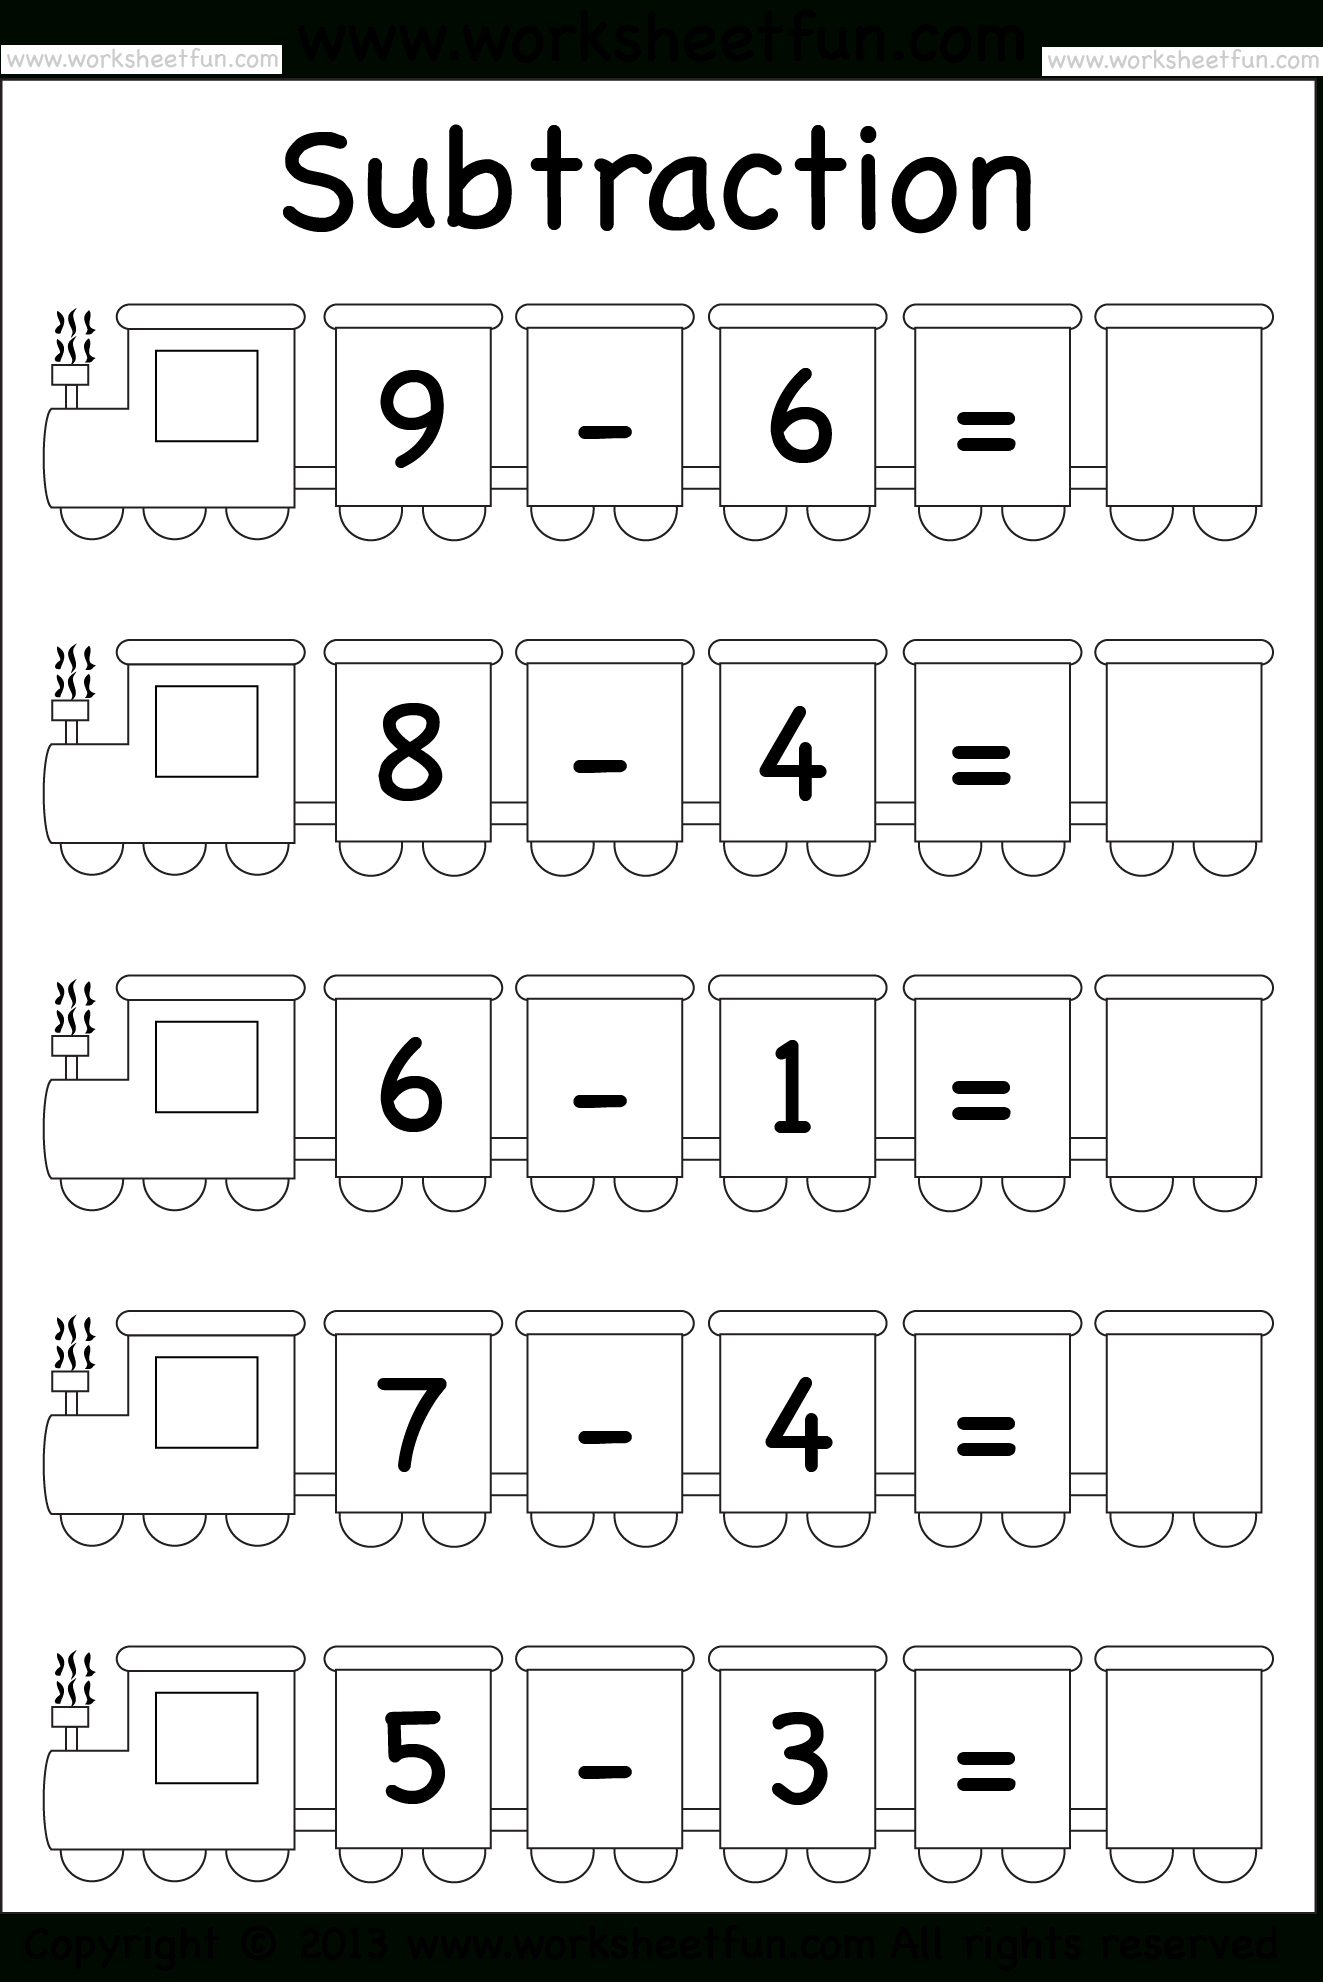 Beginner Subtraction – 5 Kindergarten Subtraction Worksheets / Free | Printable Subtraction Worksheets